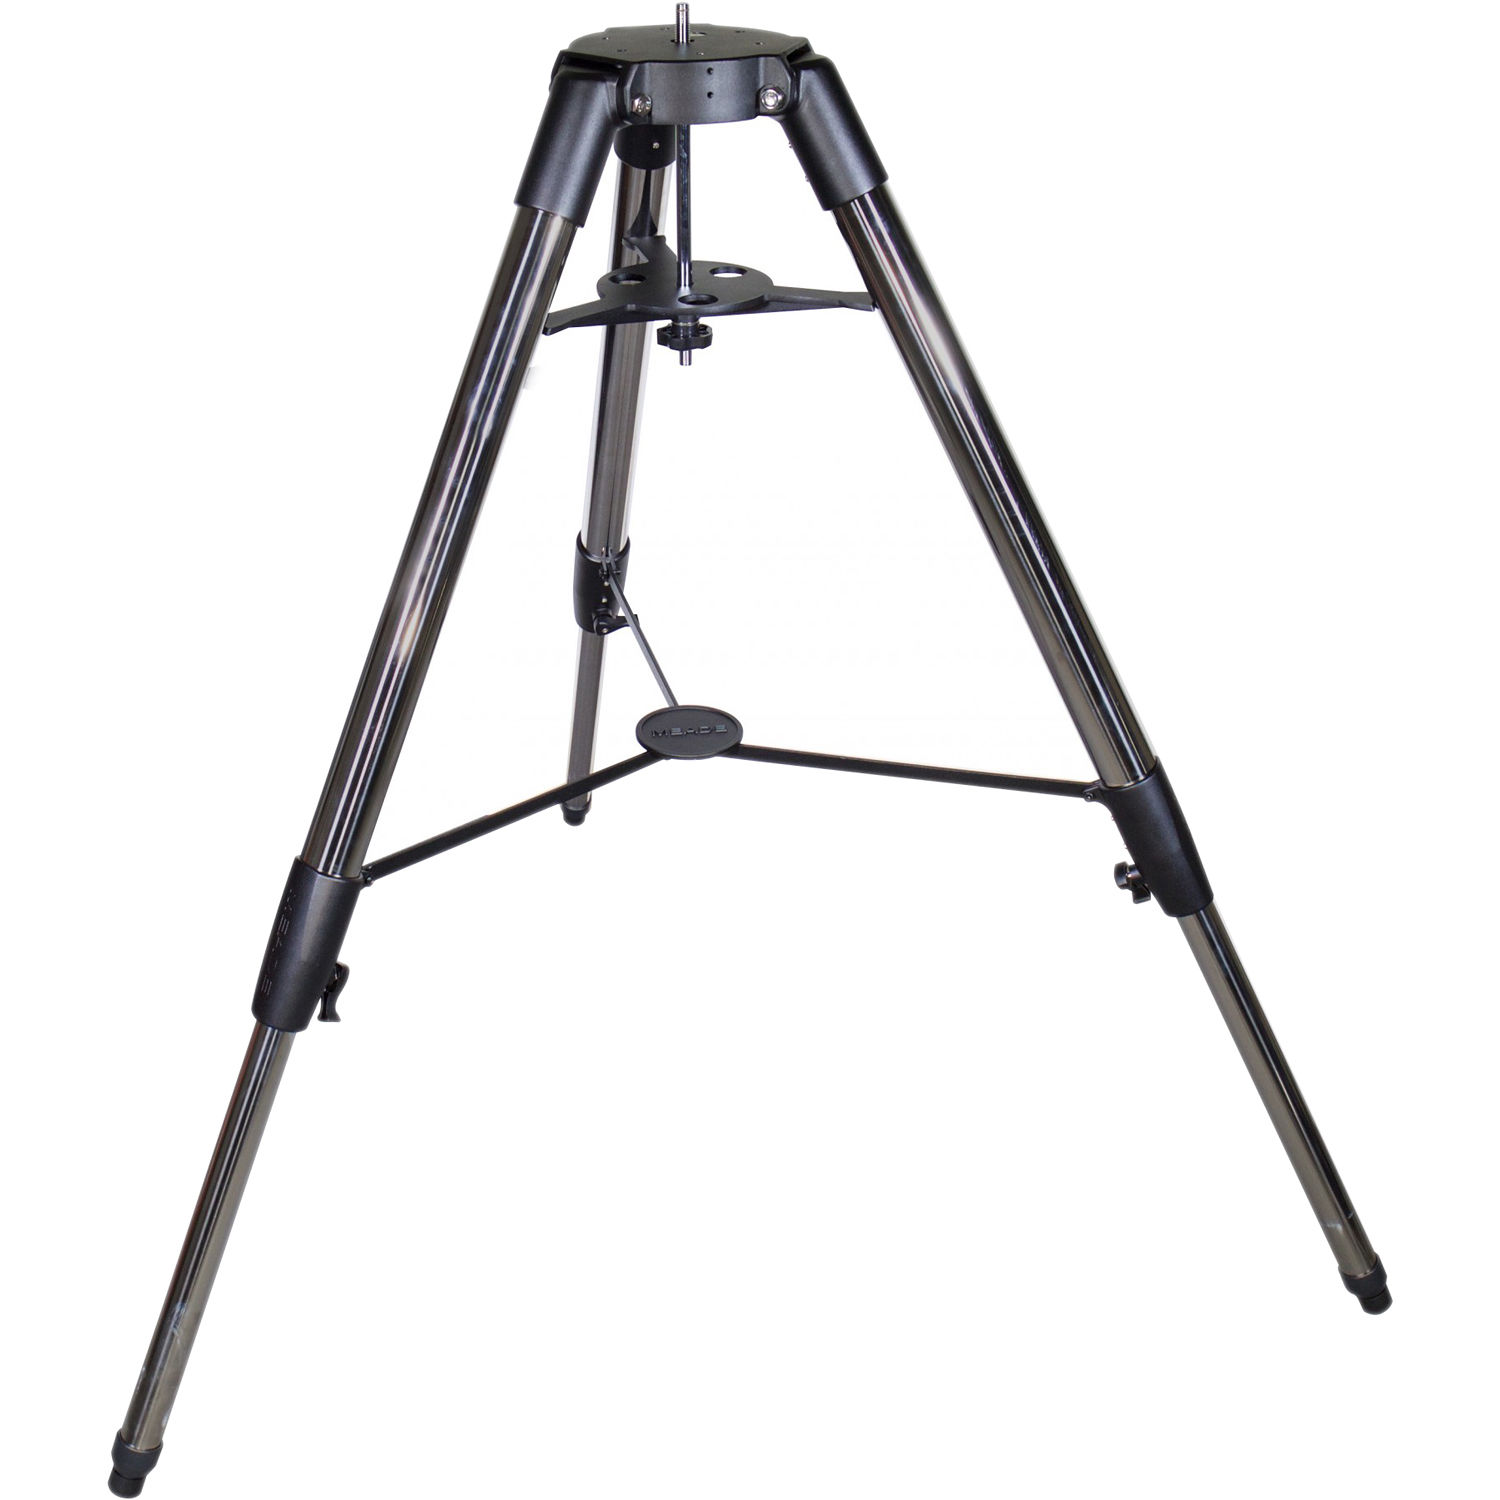 Meade Instruments Classic 30 Photo Tripod Photo Tripod A Great Variety Of Models Cameras & Photo Binocular Cases & Accessories